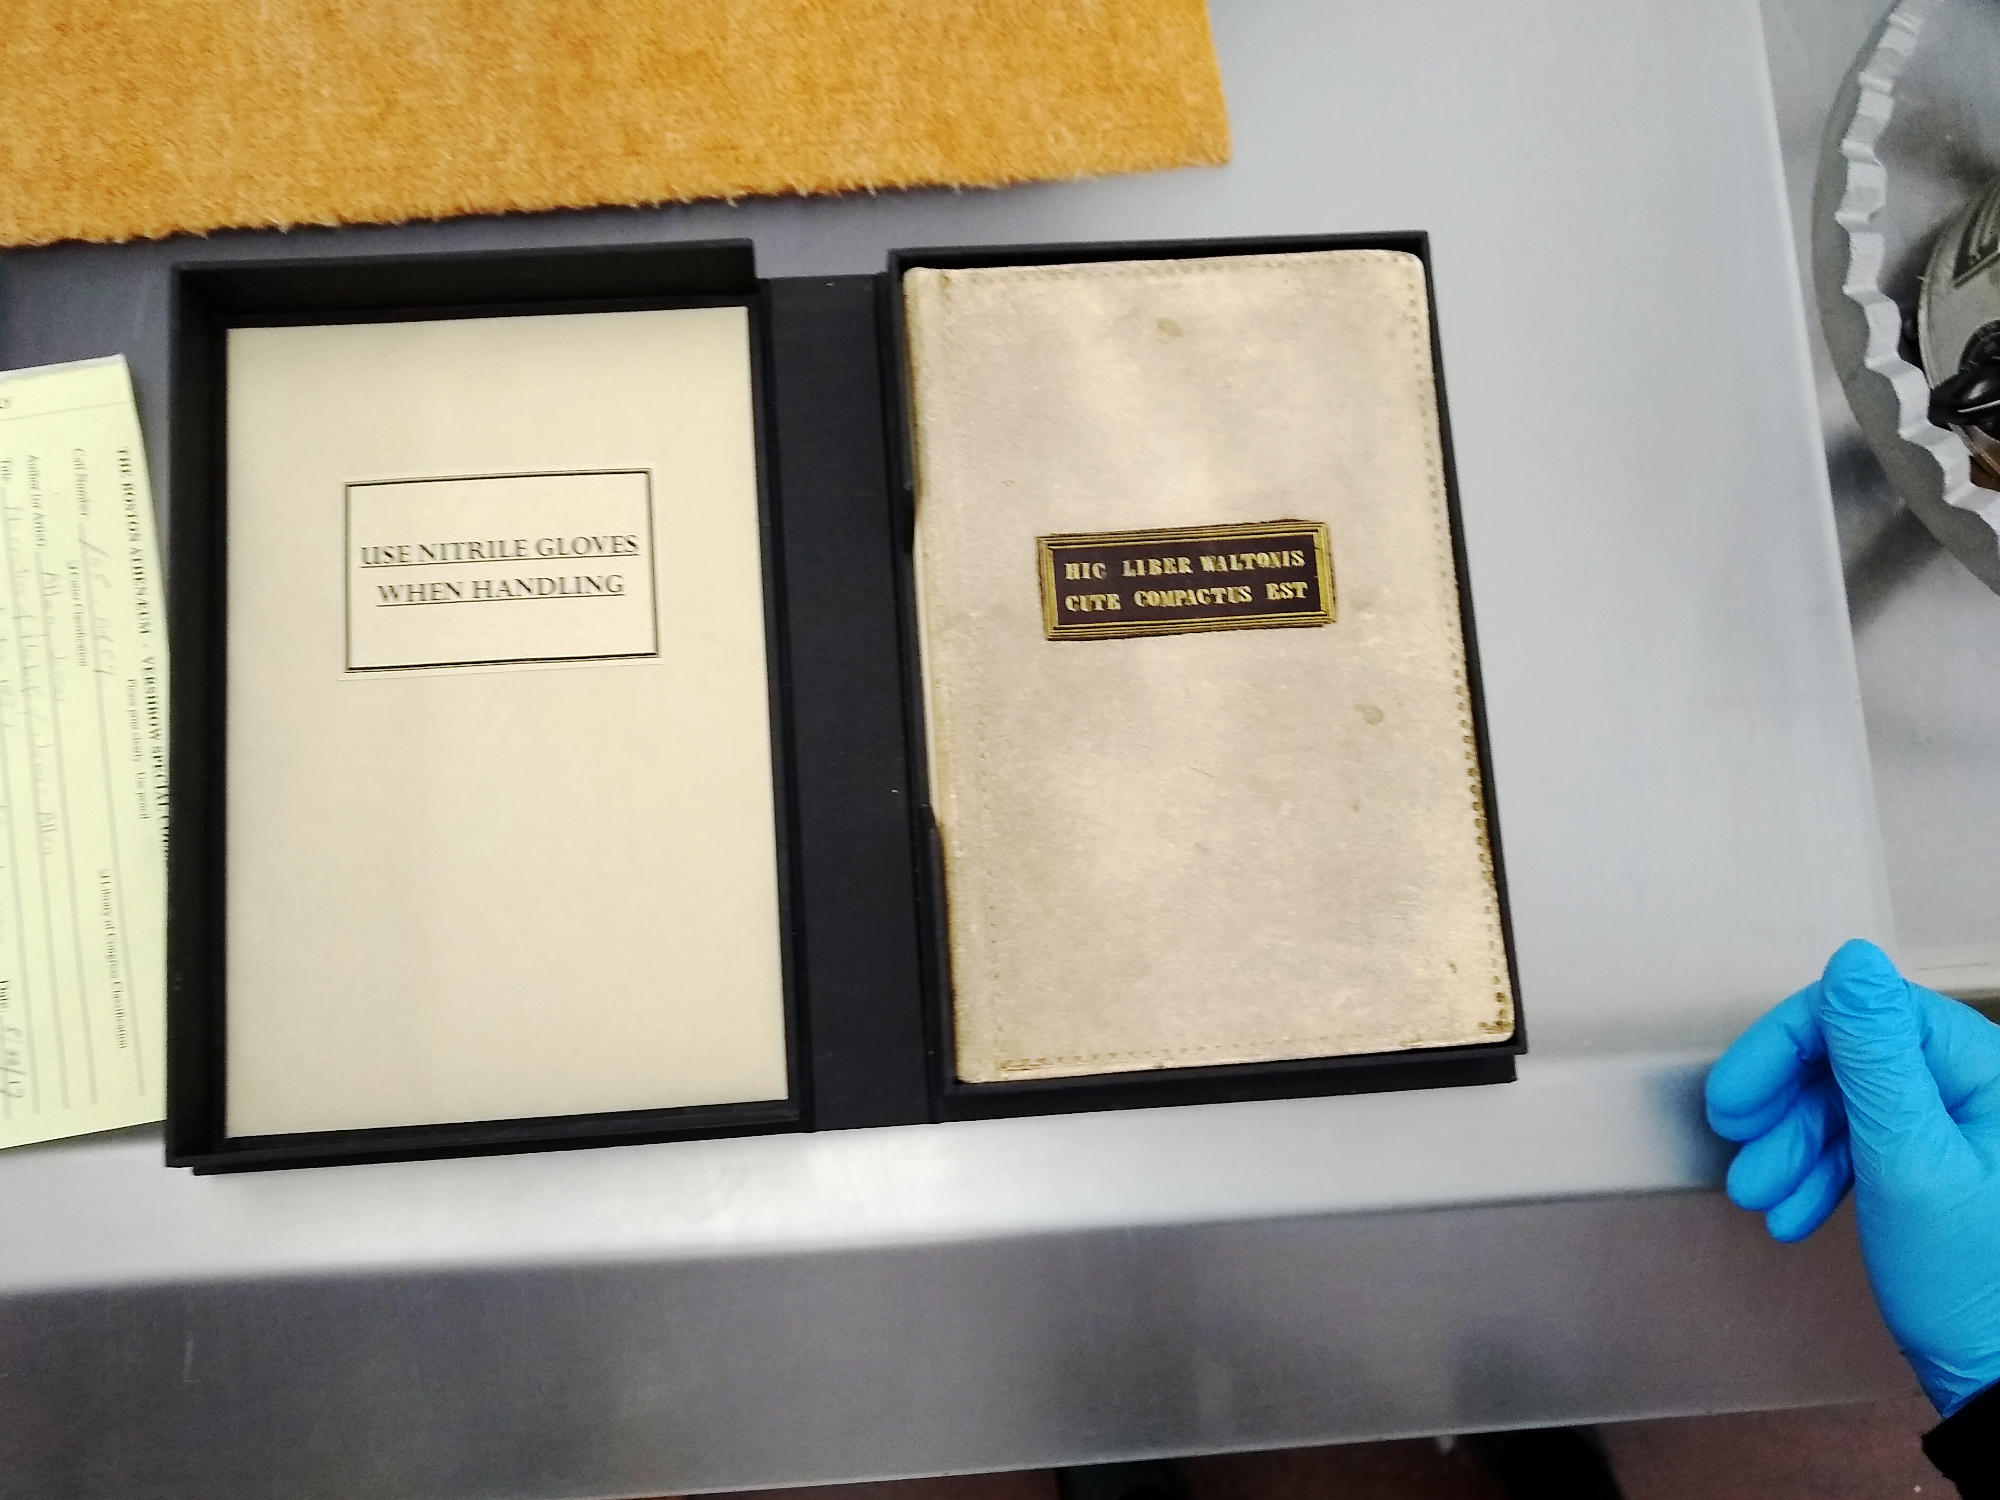 """The cover of James Allen's book, which states in Latin that the book has been bound in """"Walton's"""" skin, where """"Walton"""" was a pseudonym used by Allen. Also a warning to wear gloves while handling the book, as the binding may contain residual arsenic or other dangerous substances from the tanning process."""